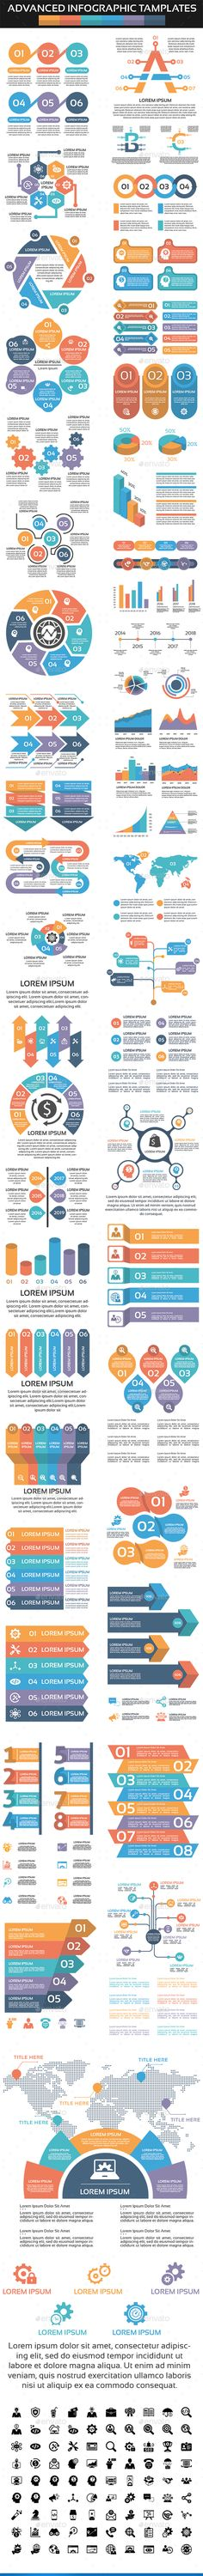 Infographic - Infographic Design - Advanced Infographic Elements - Infographics Infographic Design : – Picture : – Description Advanced Infographic Elements – Infographics -Read More – Infographic Resume, Infographic Templates, Infographics Design, Free Infographic, Ppt Design, Game Design, Data Visualization Tools, Layout Template, Box Templates